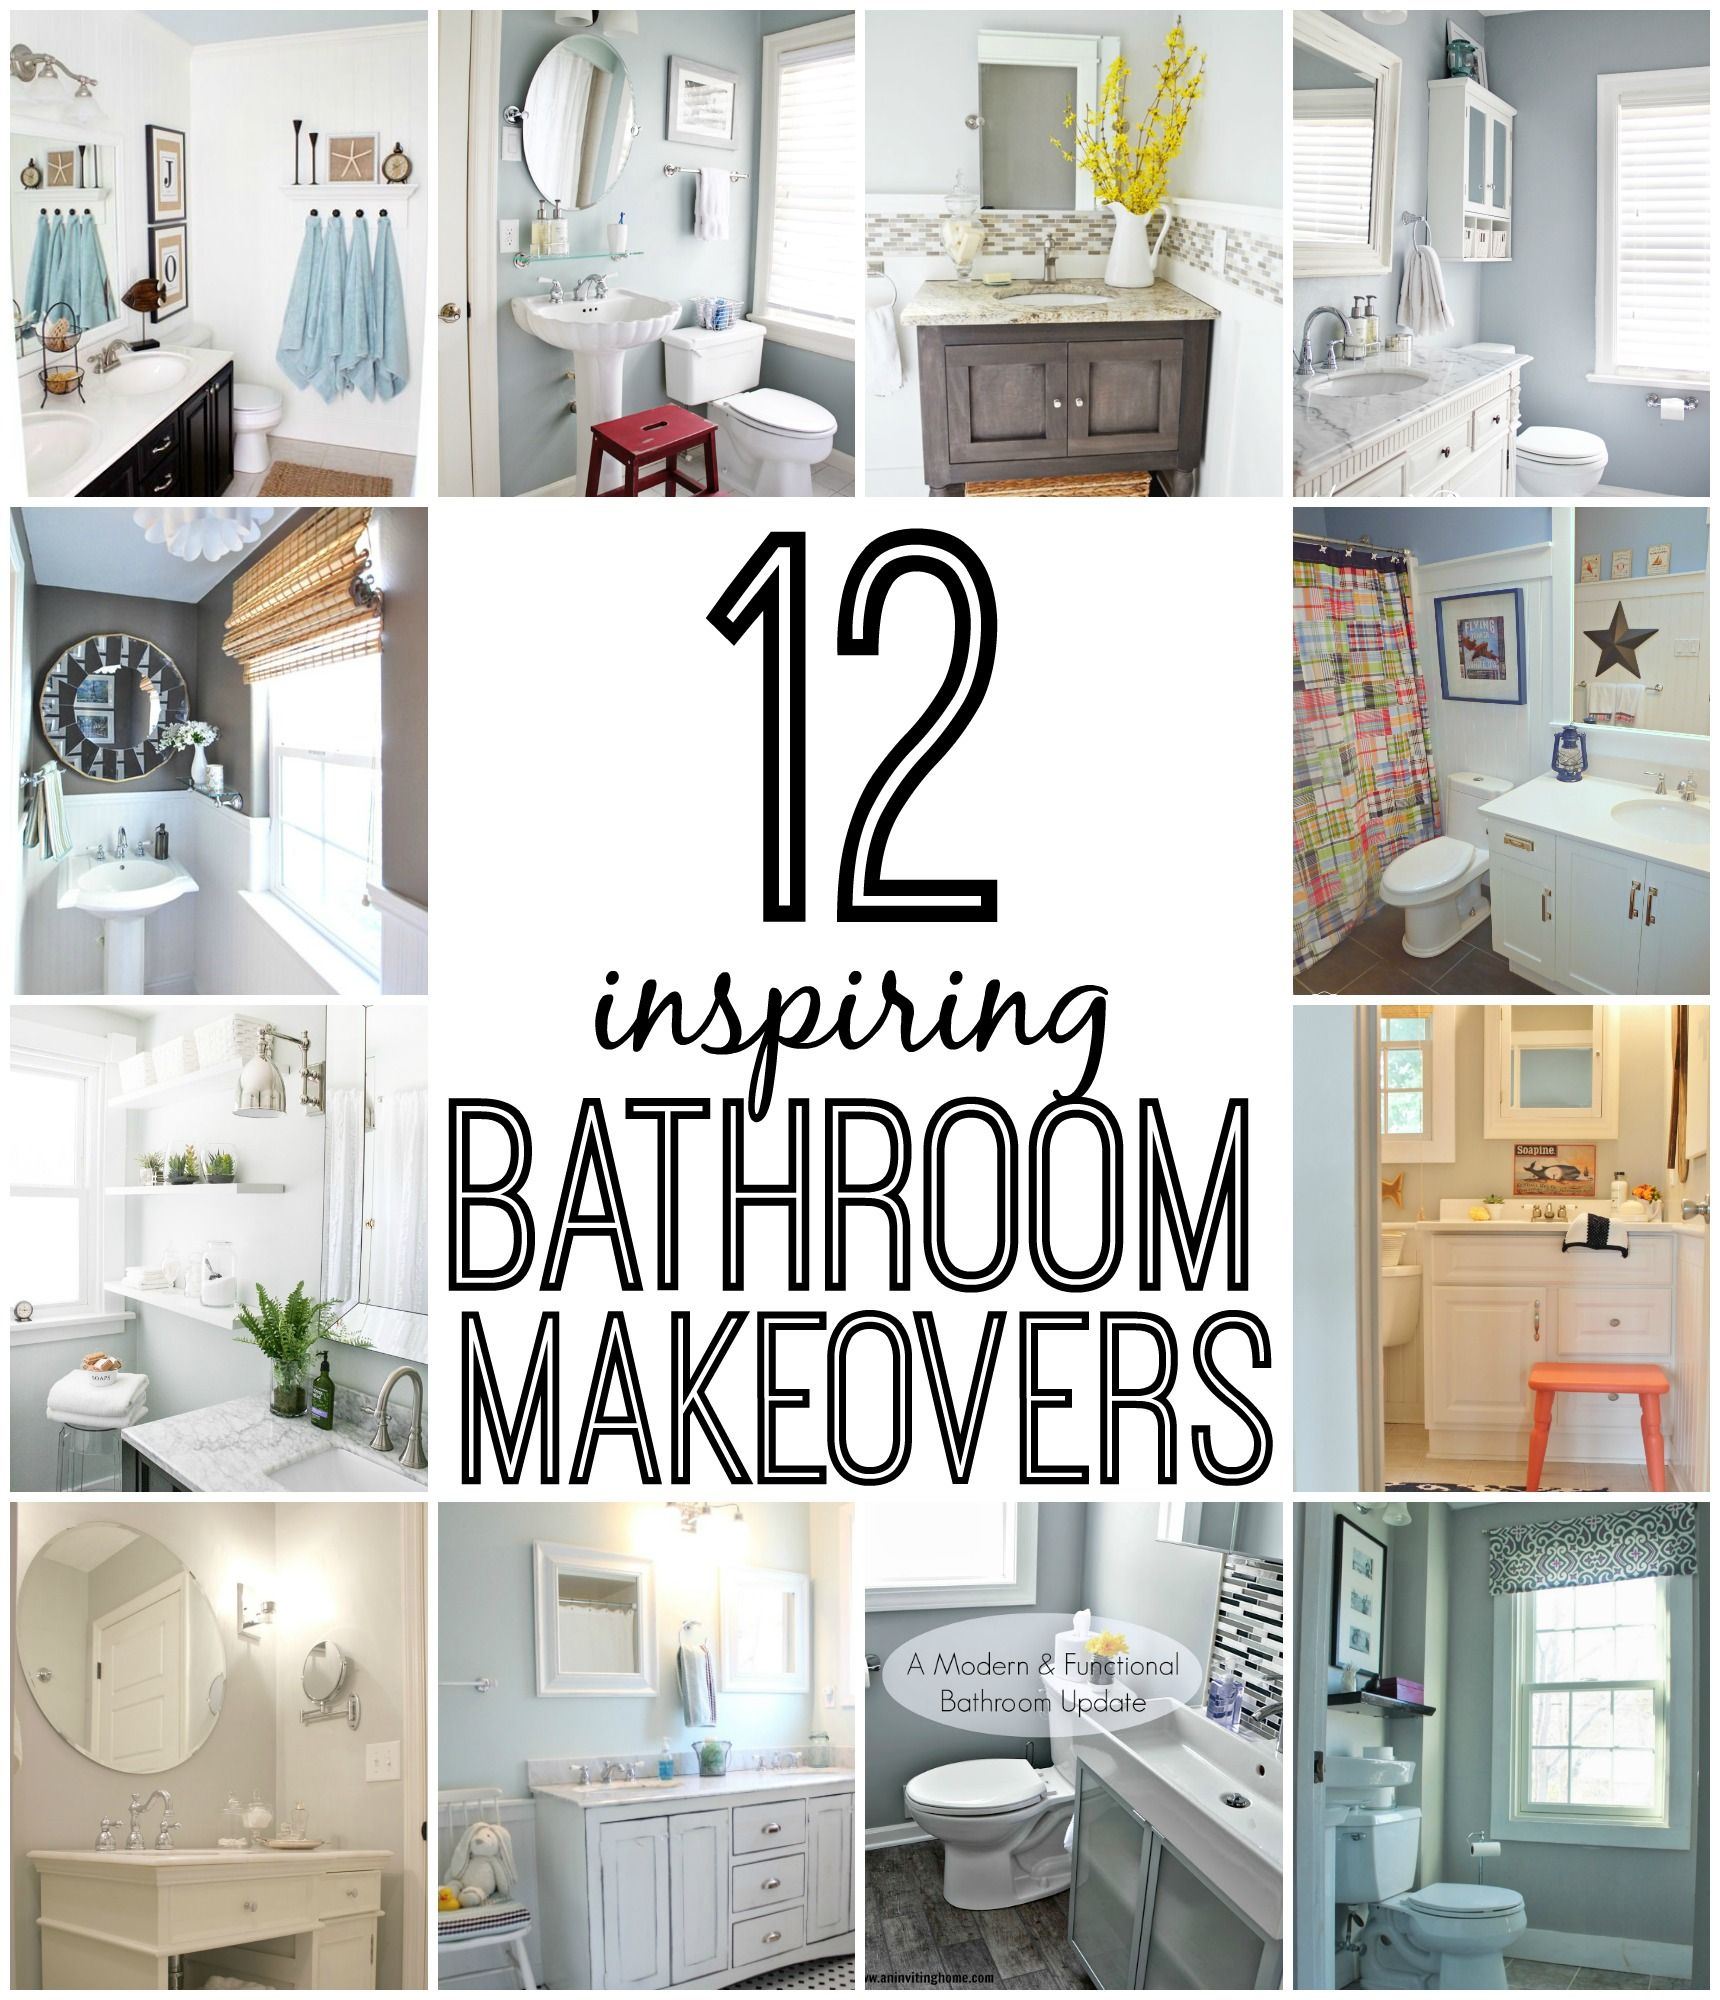 12 Inspirations For Home Improvement With Spanish Home: 12 Inspiring Bathroom Makeovers